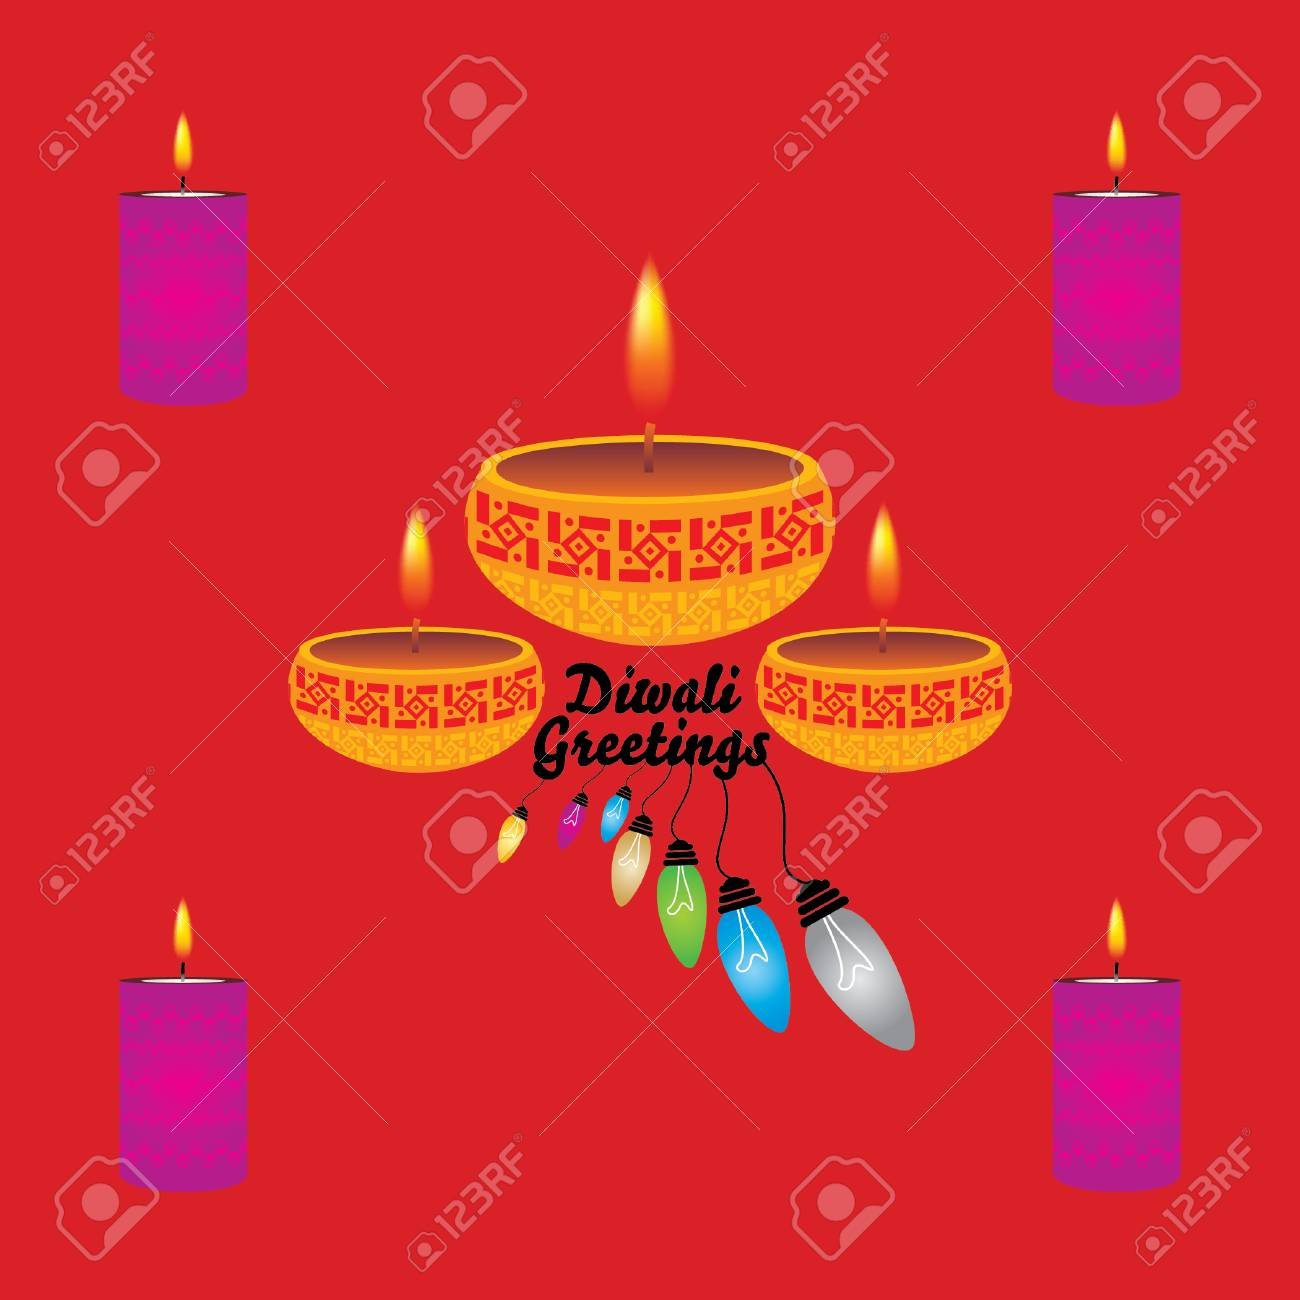 Diwali Greeting Concept With Lamp Royalty Free Cliparts Vectors